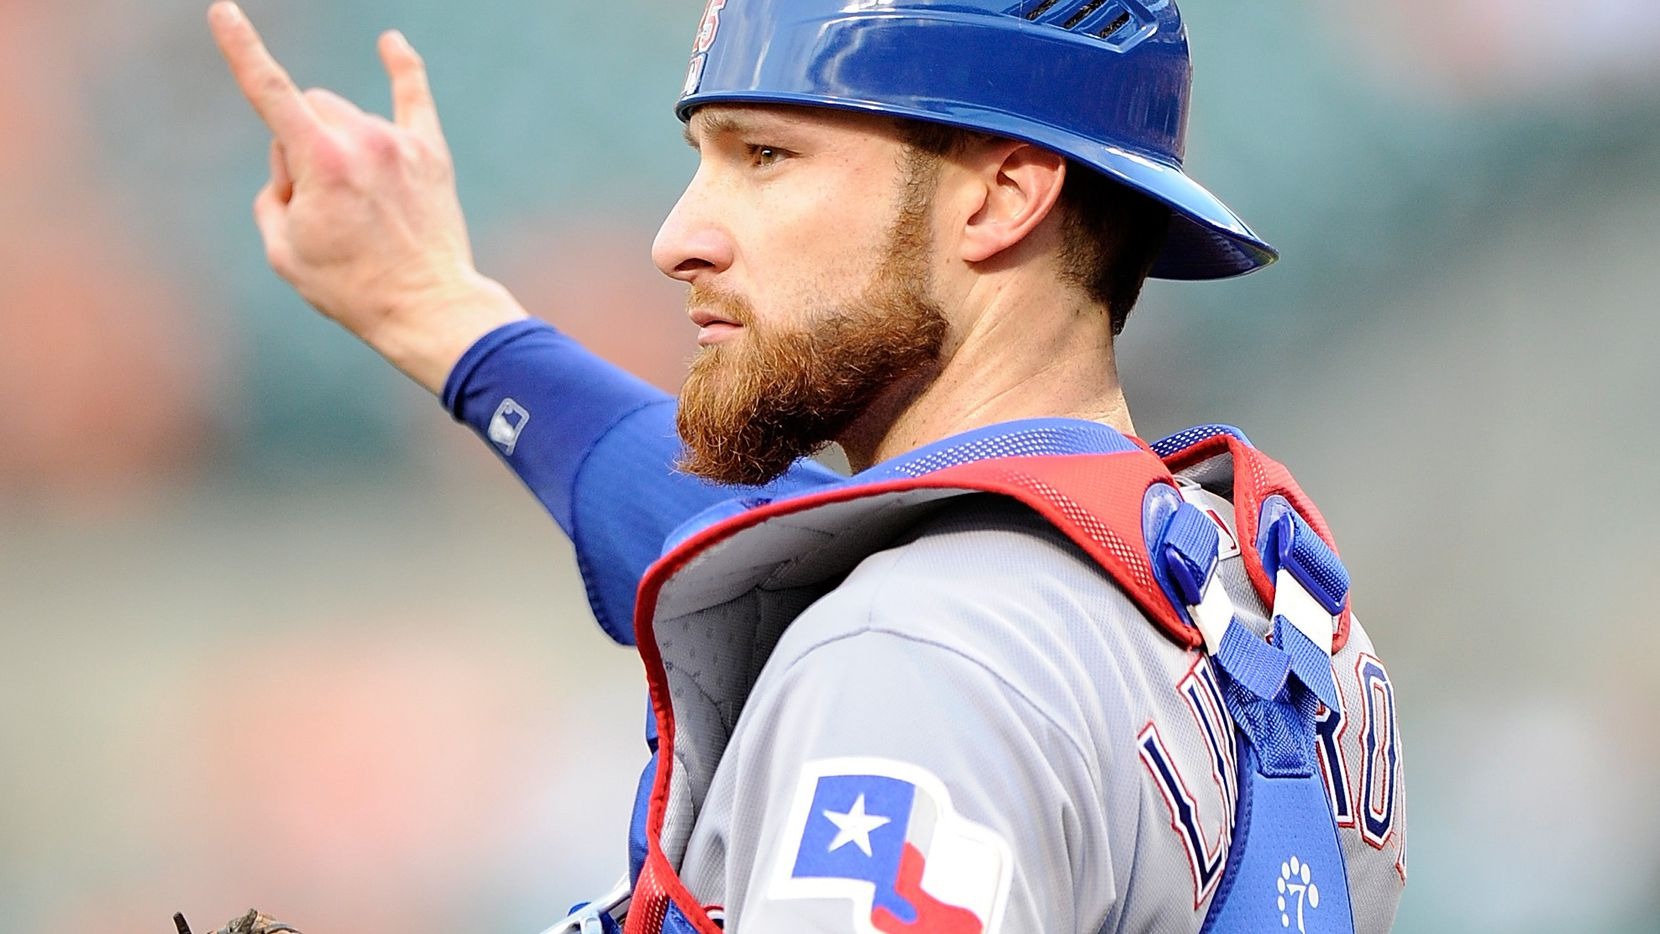 BALTIMORE, MD - AUGUST 02:  Jonathan Lucroy #25 of the Texas Rangers motions that there are two outs in the second inning against the Baltimore Orioles at Oriole Park at Camden Yards on August 2, 2016 in Baltimore, Maryland.  (Photo by Greg Fiume/Getty Images)